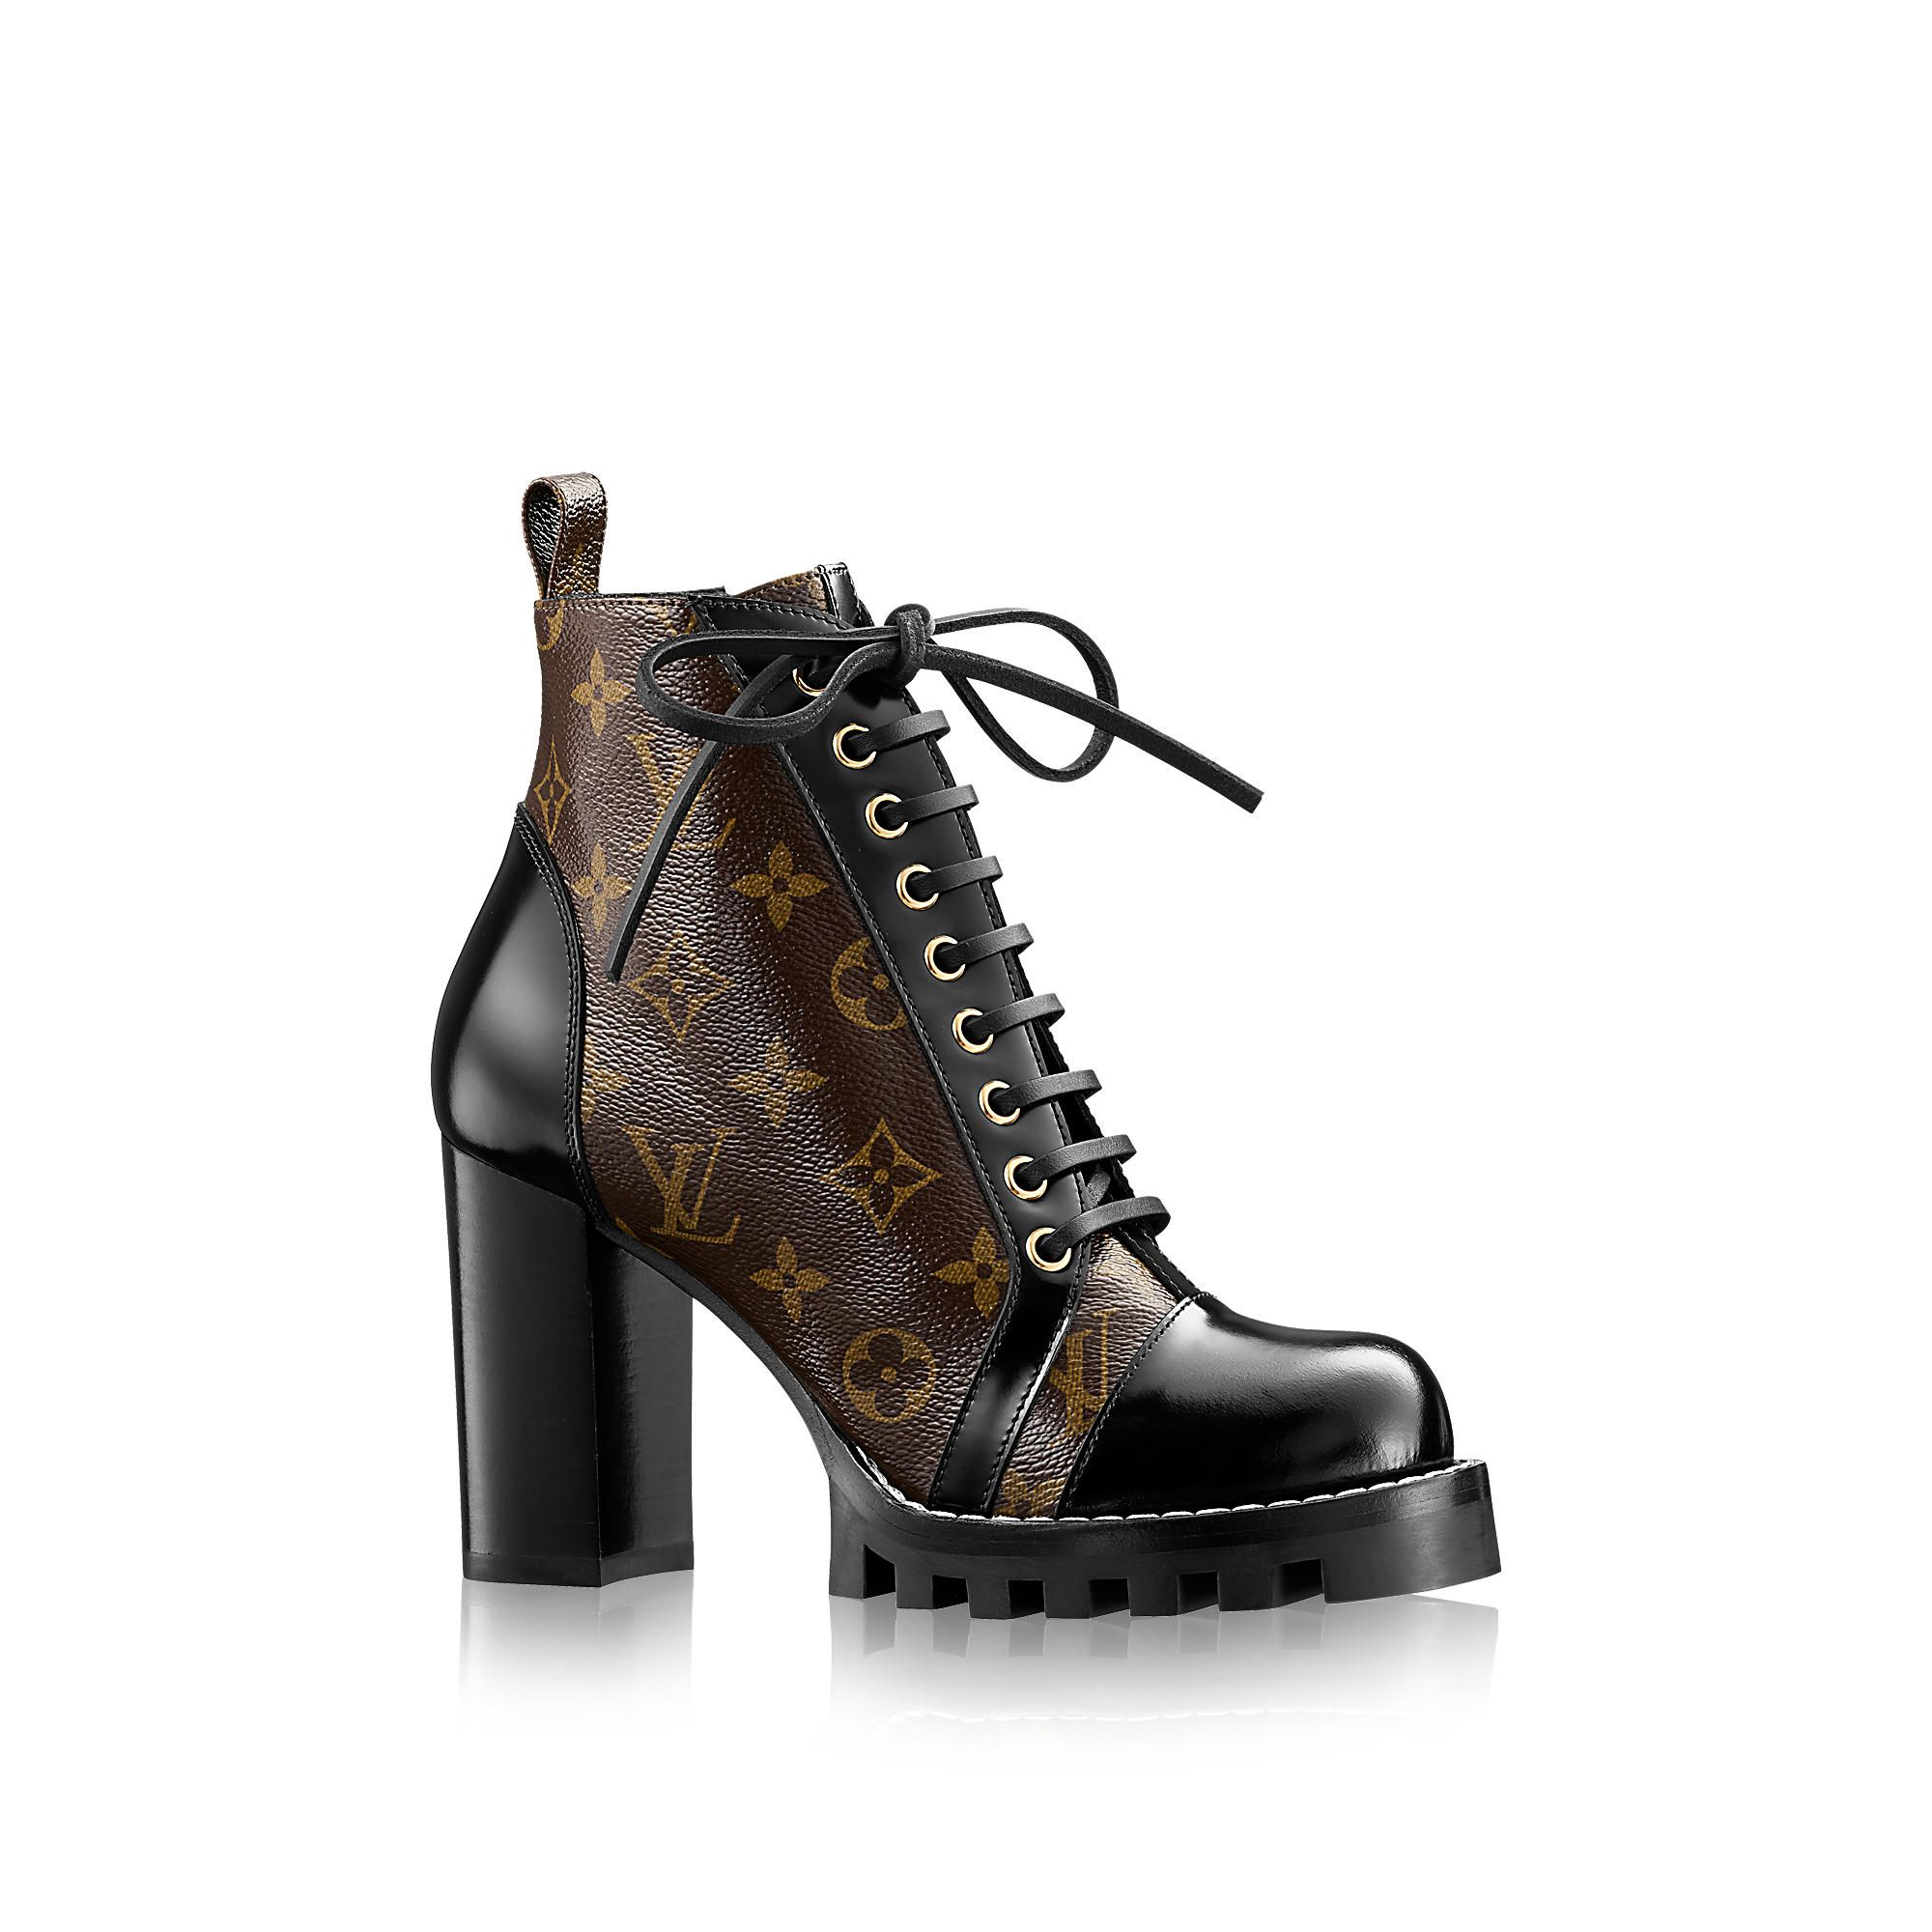 Products By Louis Vuitton Star Trail Ankle Boot Louis Vuitton Boots Star Boots Louis Vuitton Shoes Heels